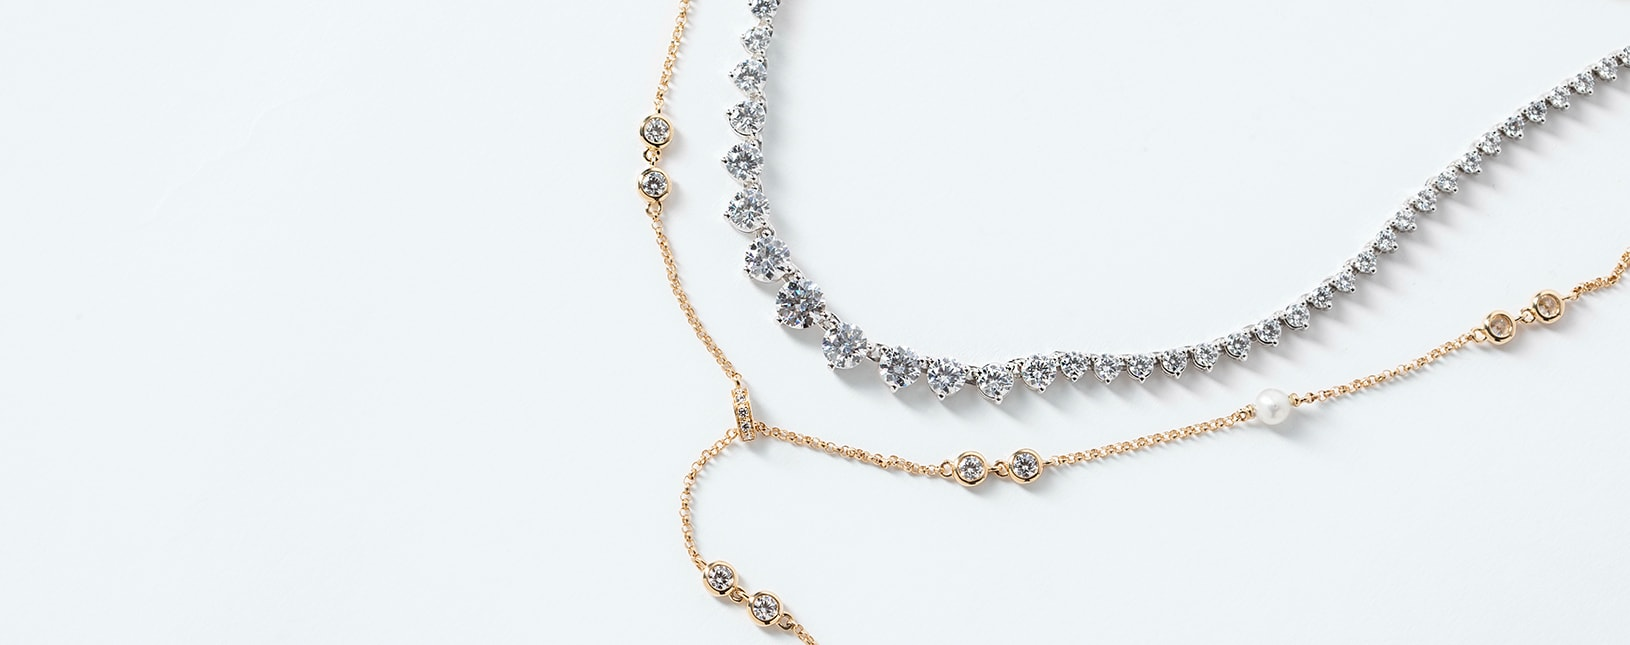 Two necklaces featuring lab grown diamond alternatives